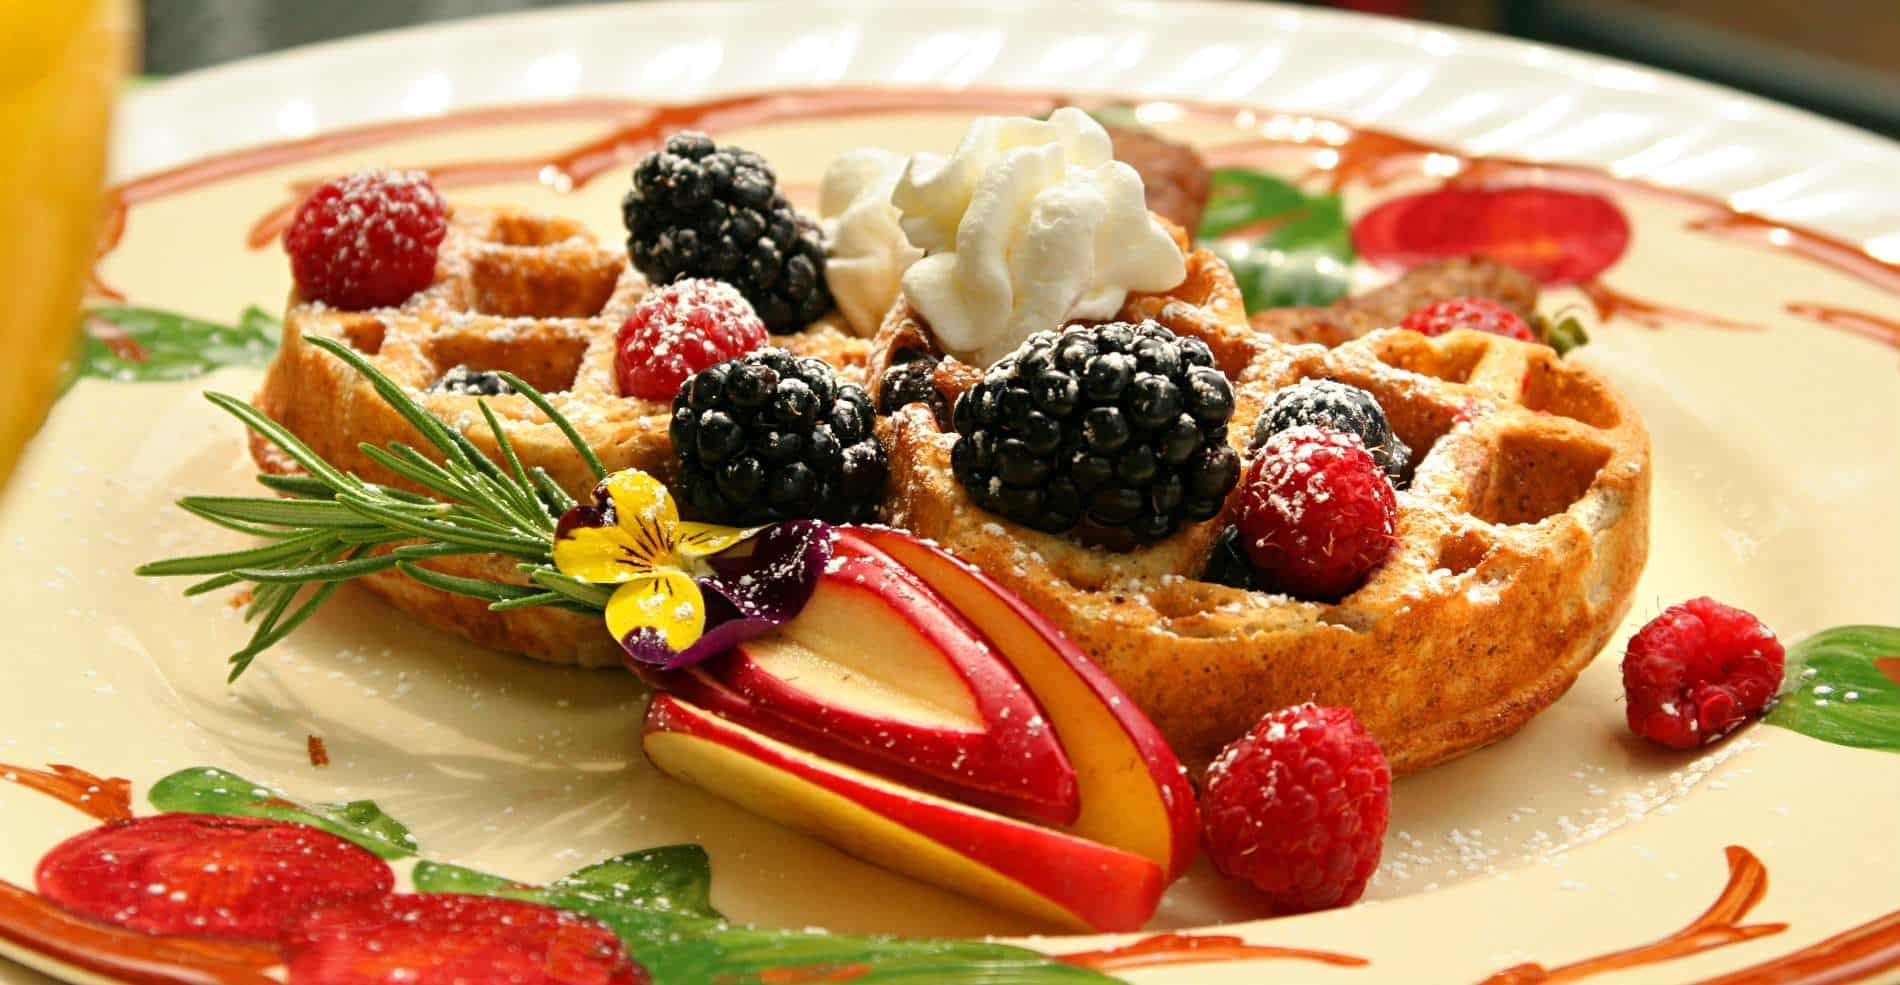 A close up of golden brown waffles covered in fresh red and blackberries